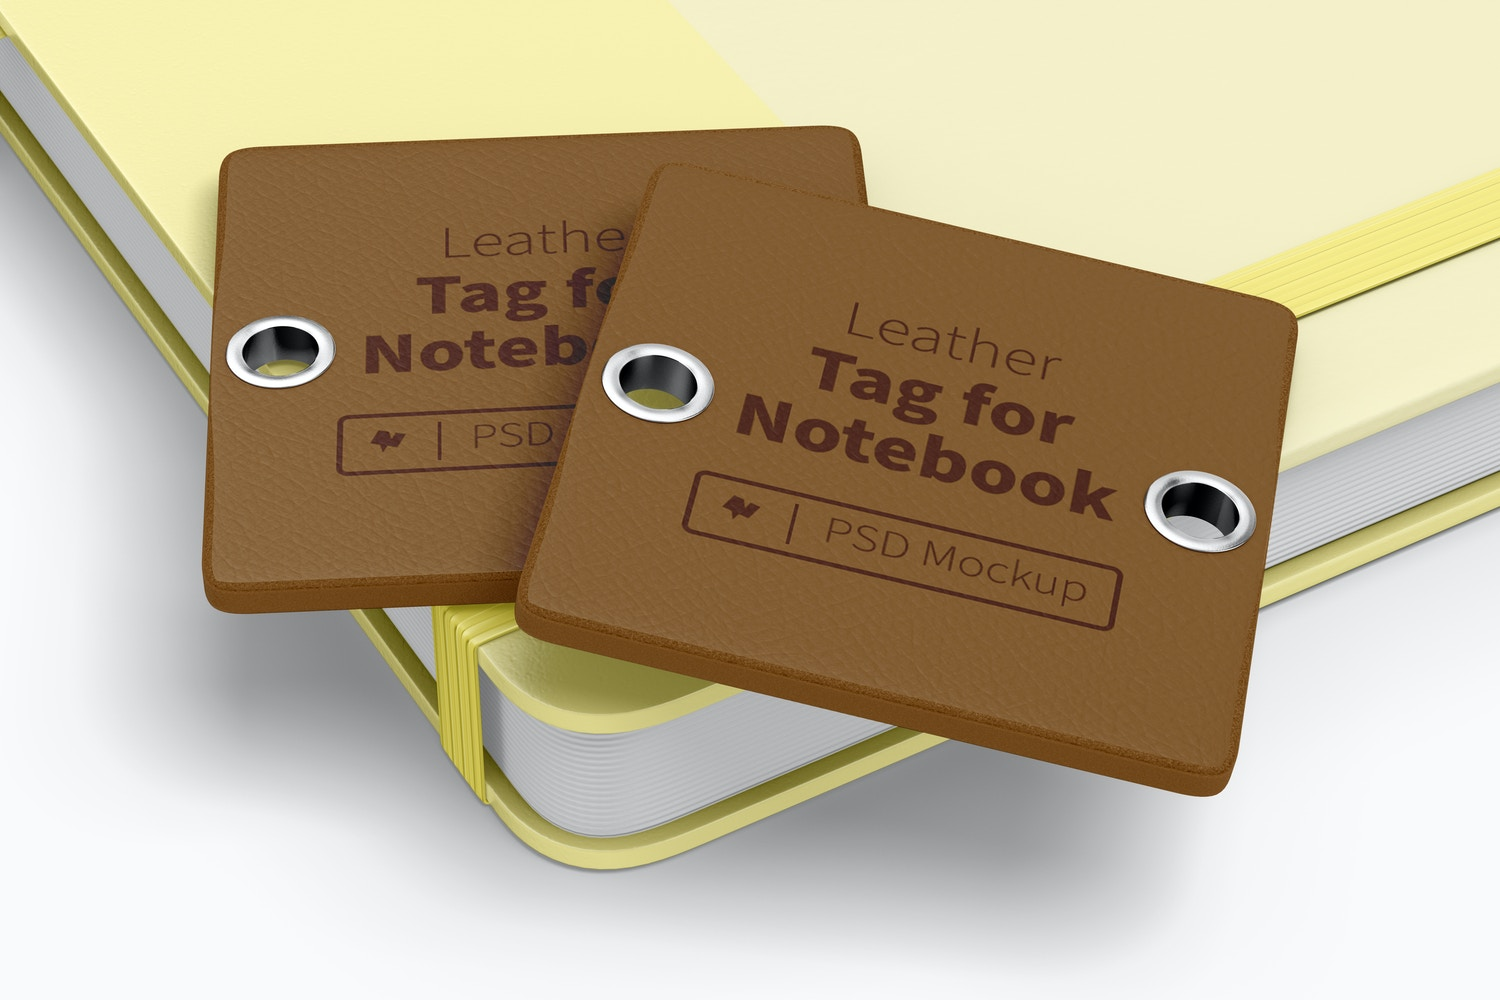 Leather Tag For Notebook Mockup, Stacked